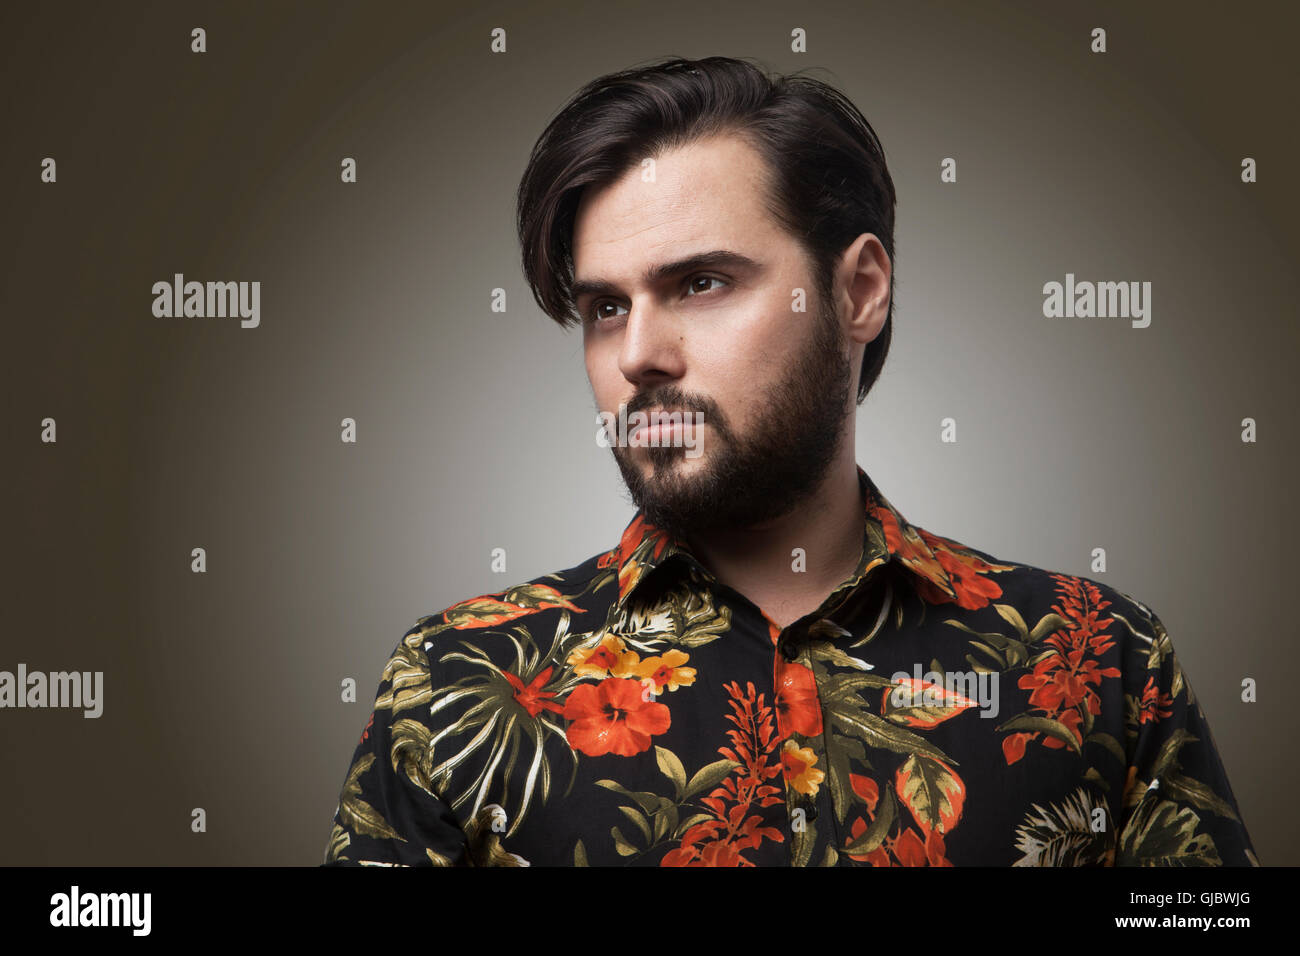 Portrait Handsome Bearded Man Wearing Stylish Color Shirt.Beauty Lifestyle People Concept Photo.Adult Serious Hipster - Stock Image